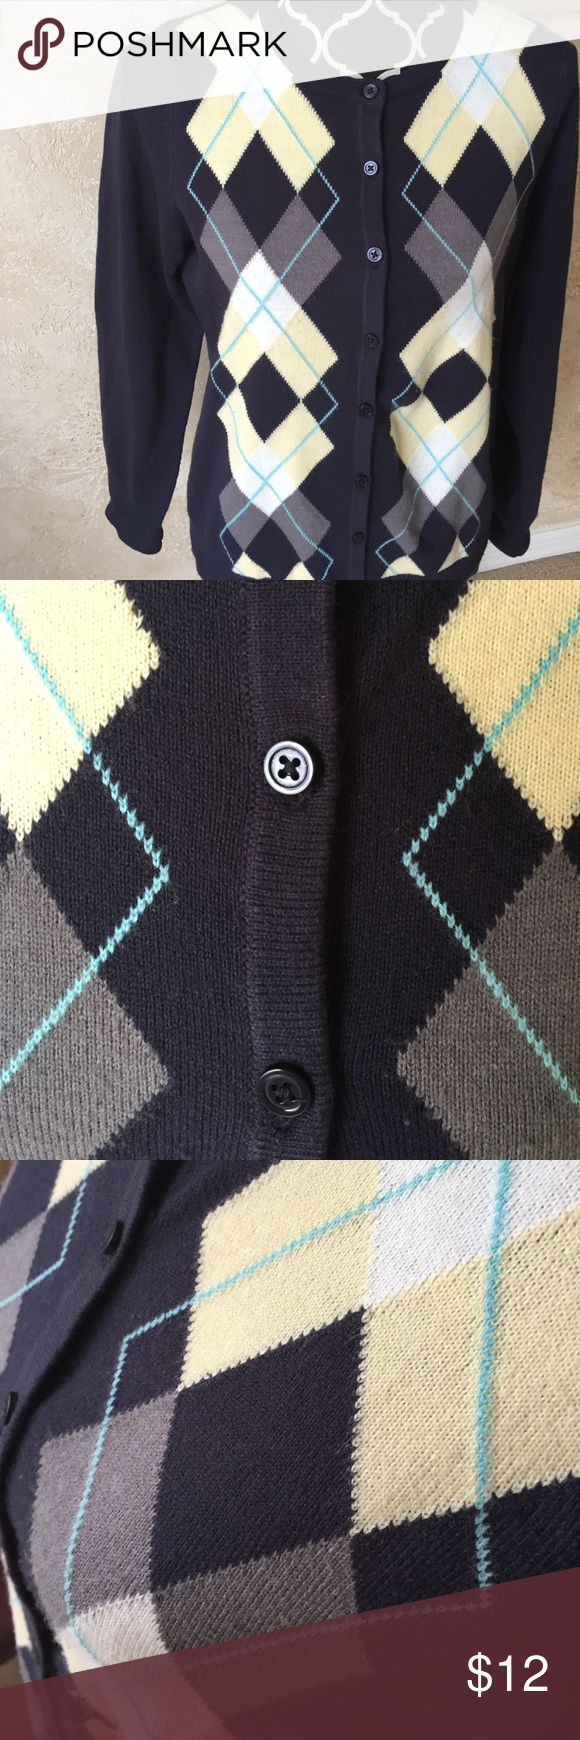 Argyle Sweater Navy with yellow, white, gray, and light blue. Button up. Good condition. croft & barrow Sweaters Cardigans